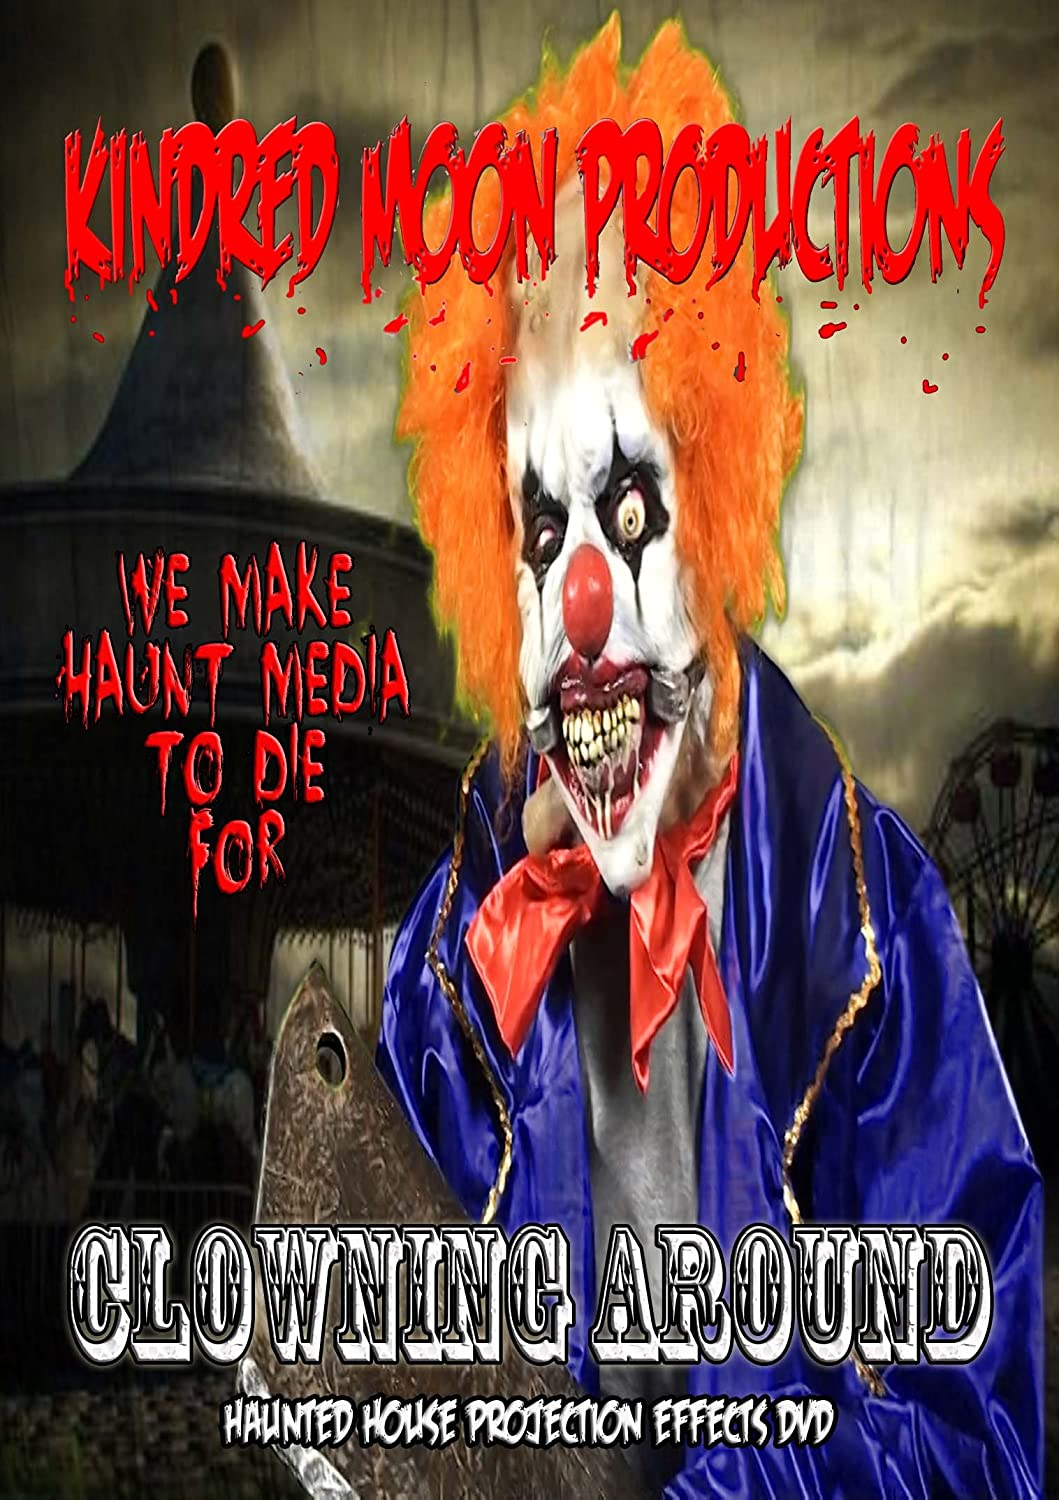 amazoncom clowning around halloween projection effects dvd michael mcdonald movies tv